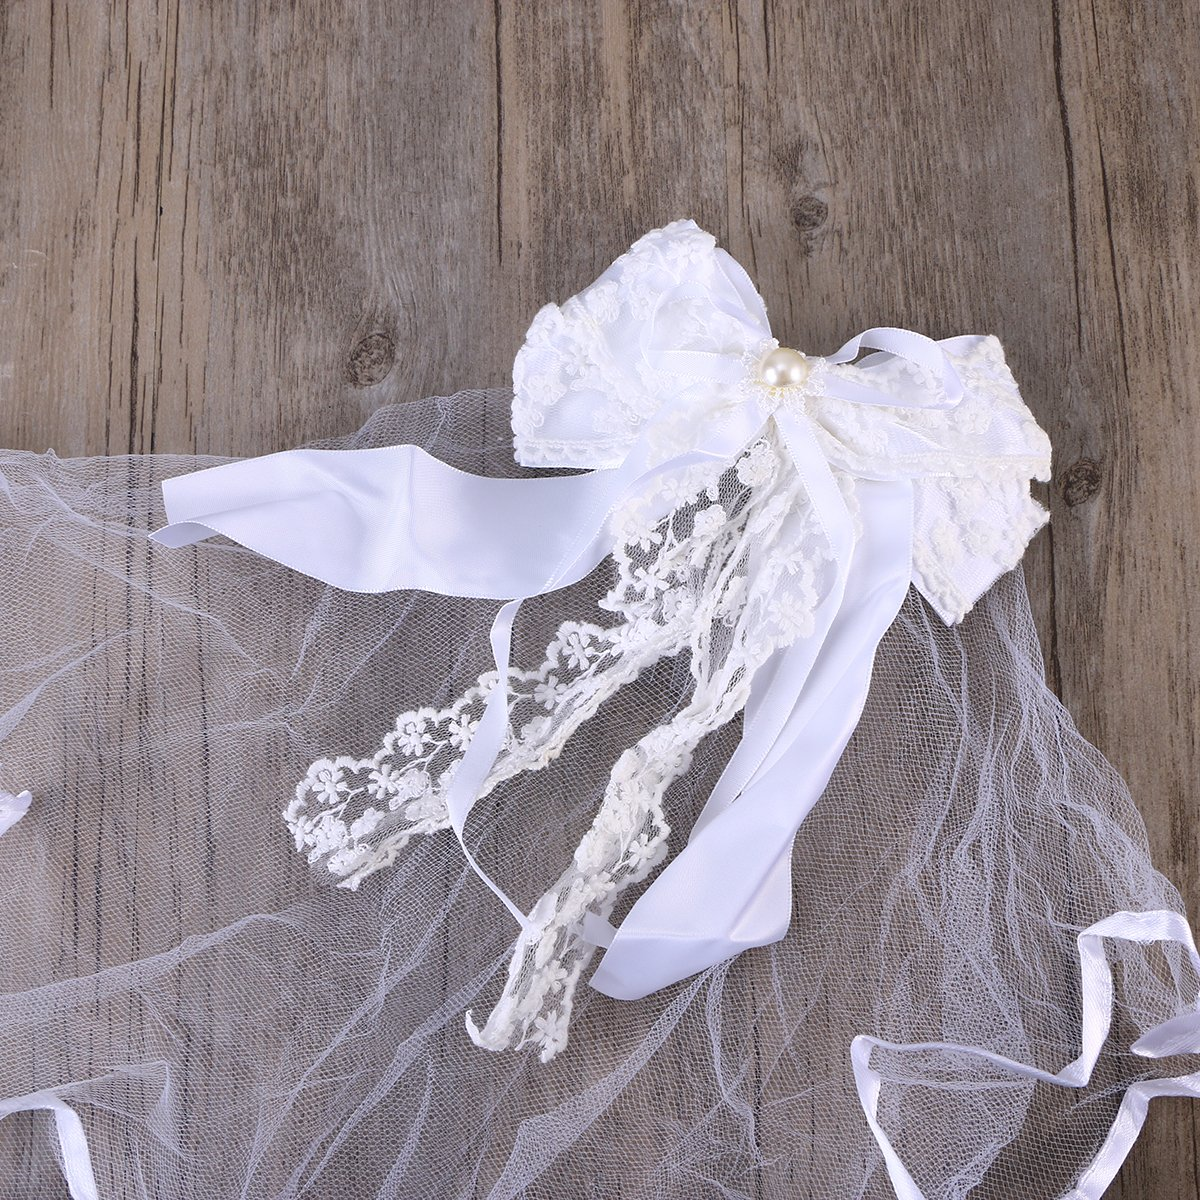 FENICAL Wedding Veil Bowknot Hair Decoration Wedding Communion Floral Veil with Comb 2966435-6446-0945275681